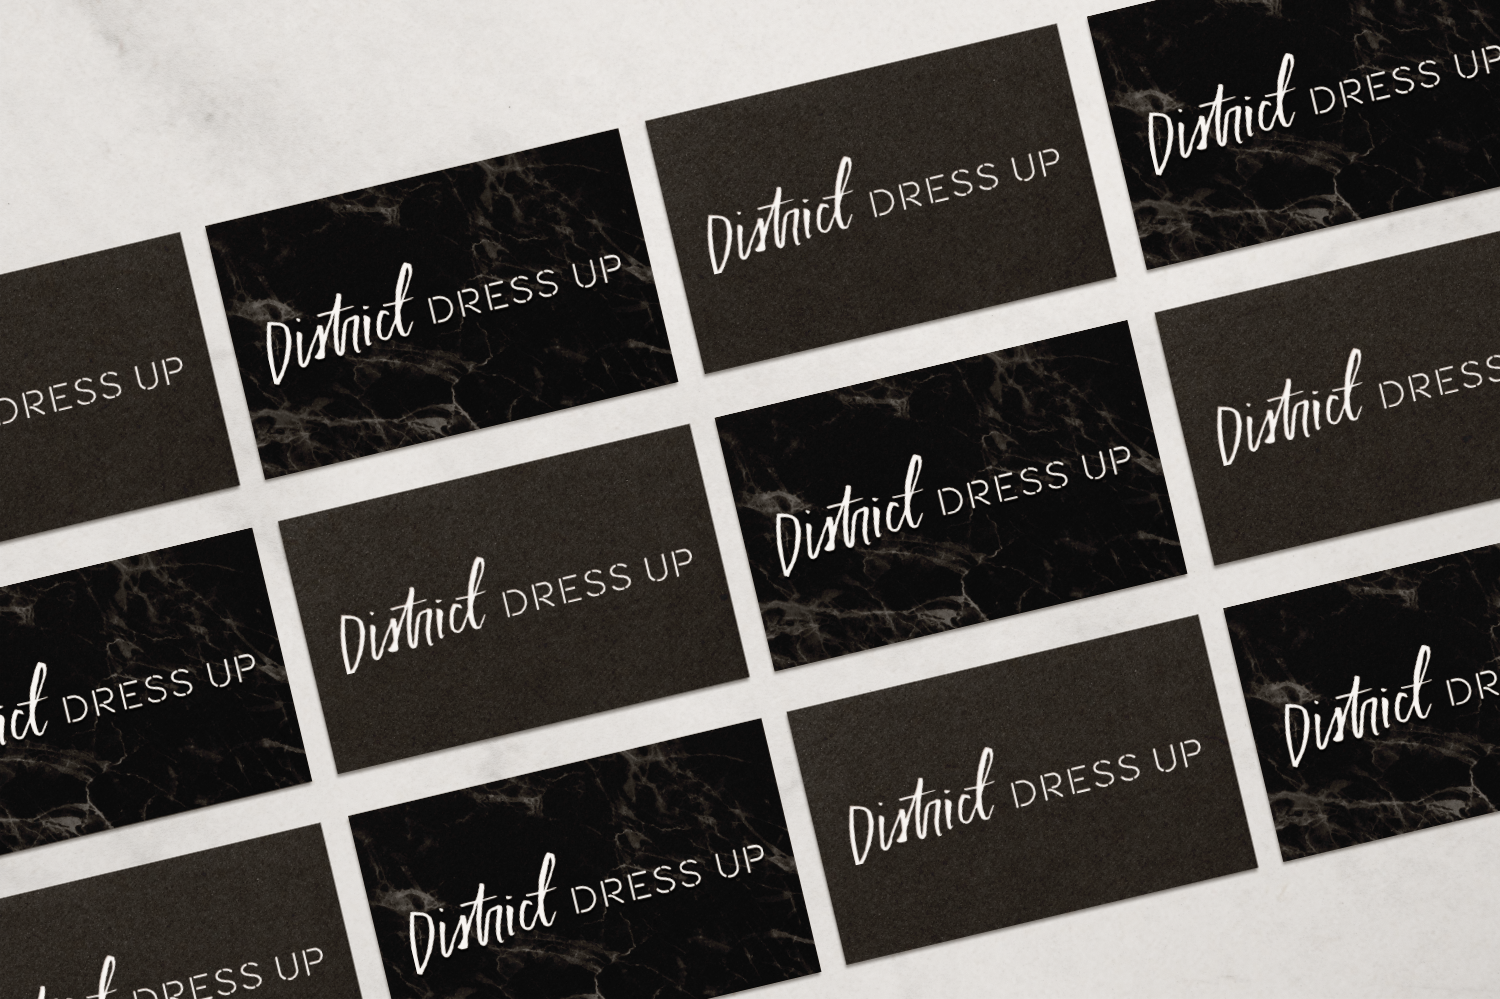 Brand Design by Haley Grand for District Dress Up